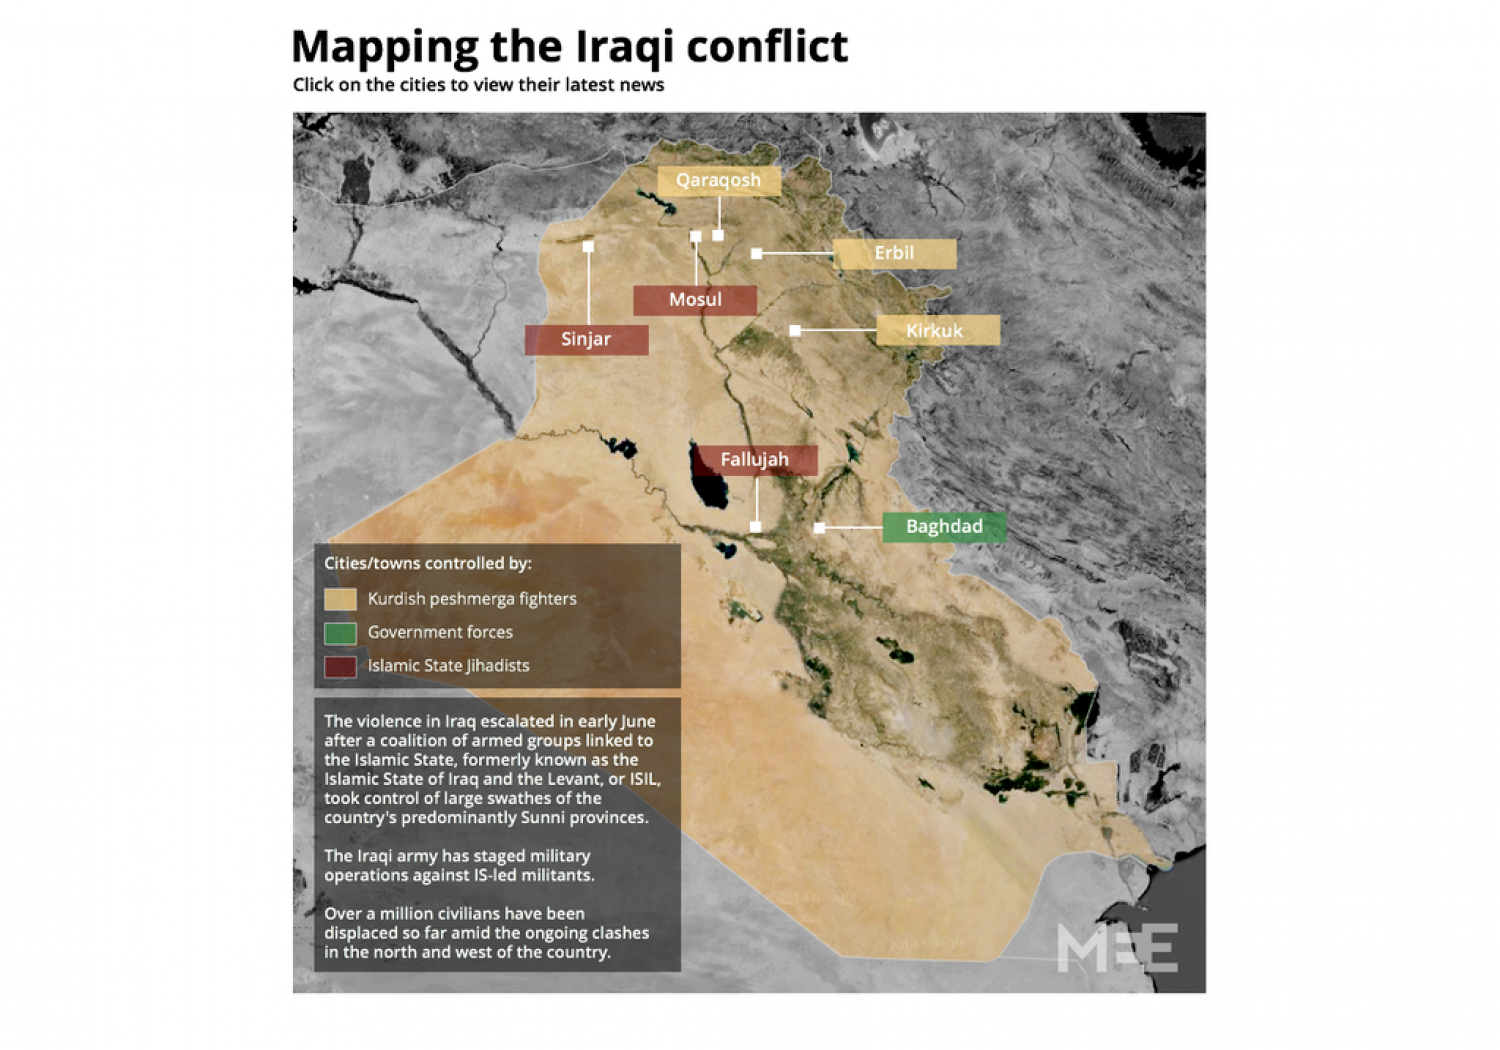 Mapping the Iraqi conflict Infographic